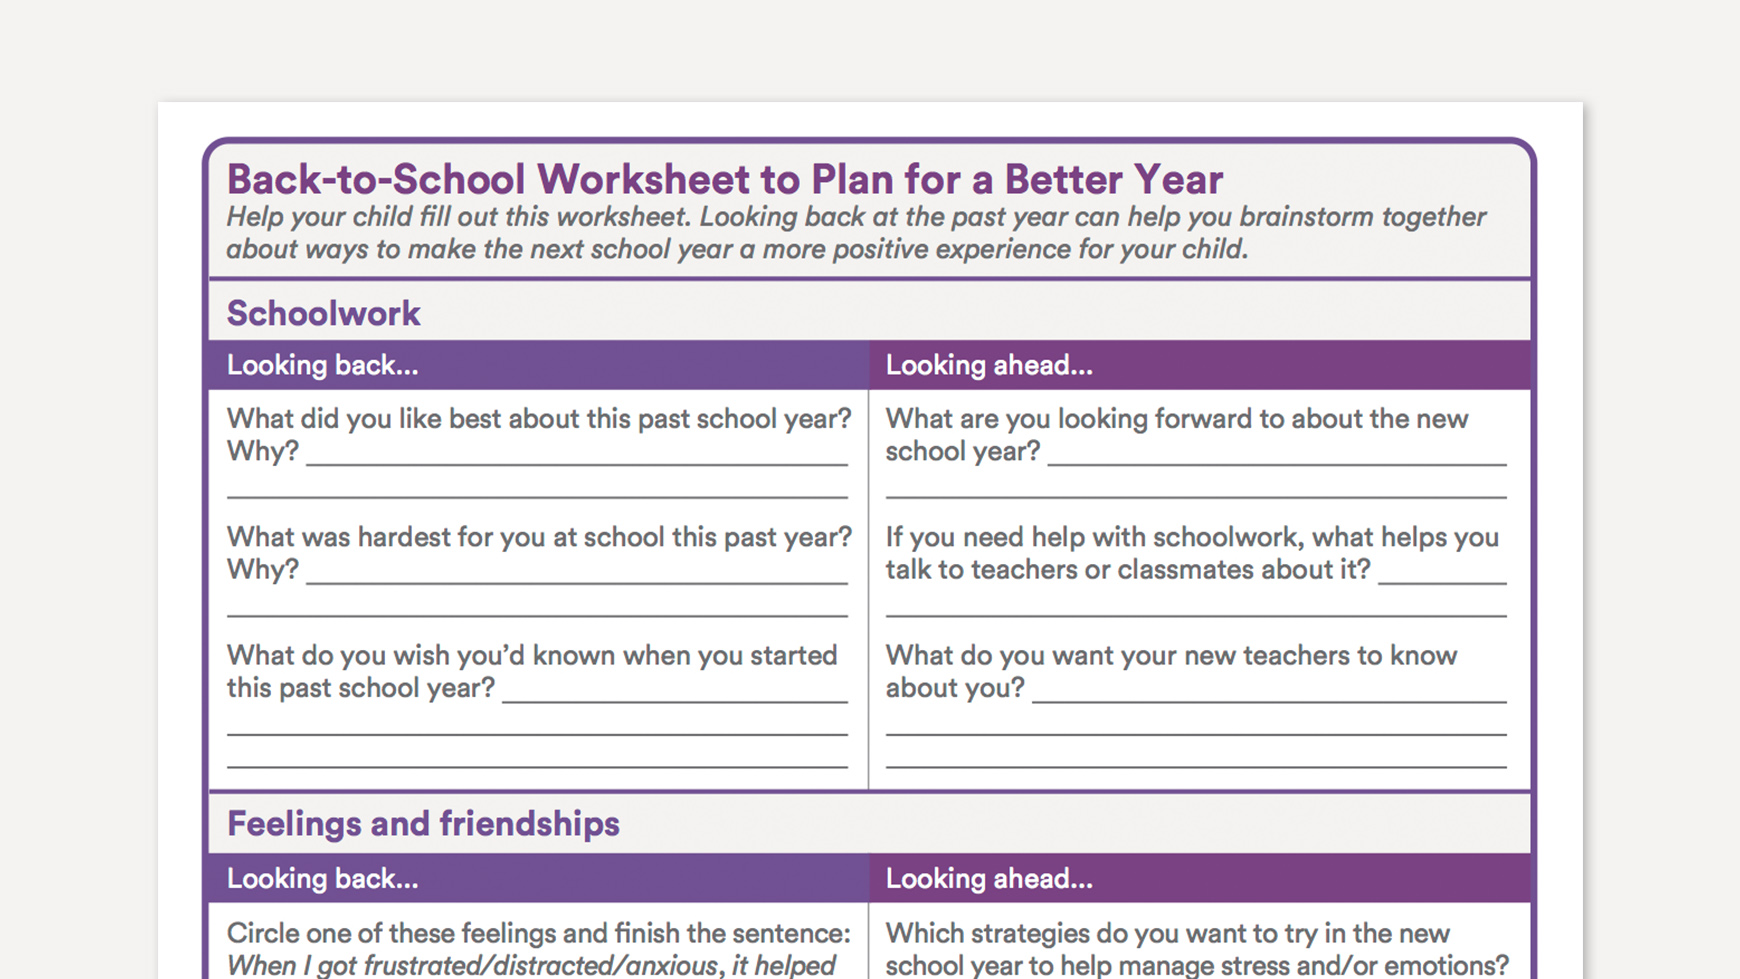 Back To School Worksheet To Plan For A Better Year